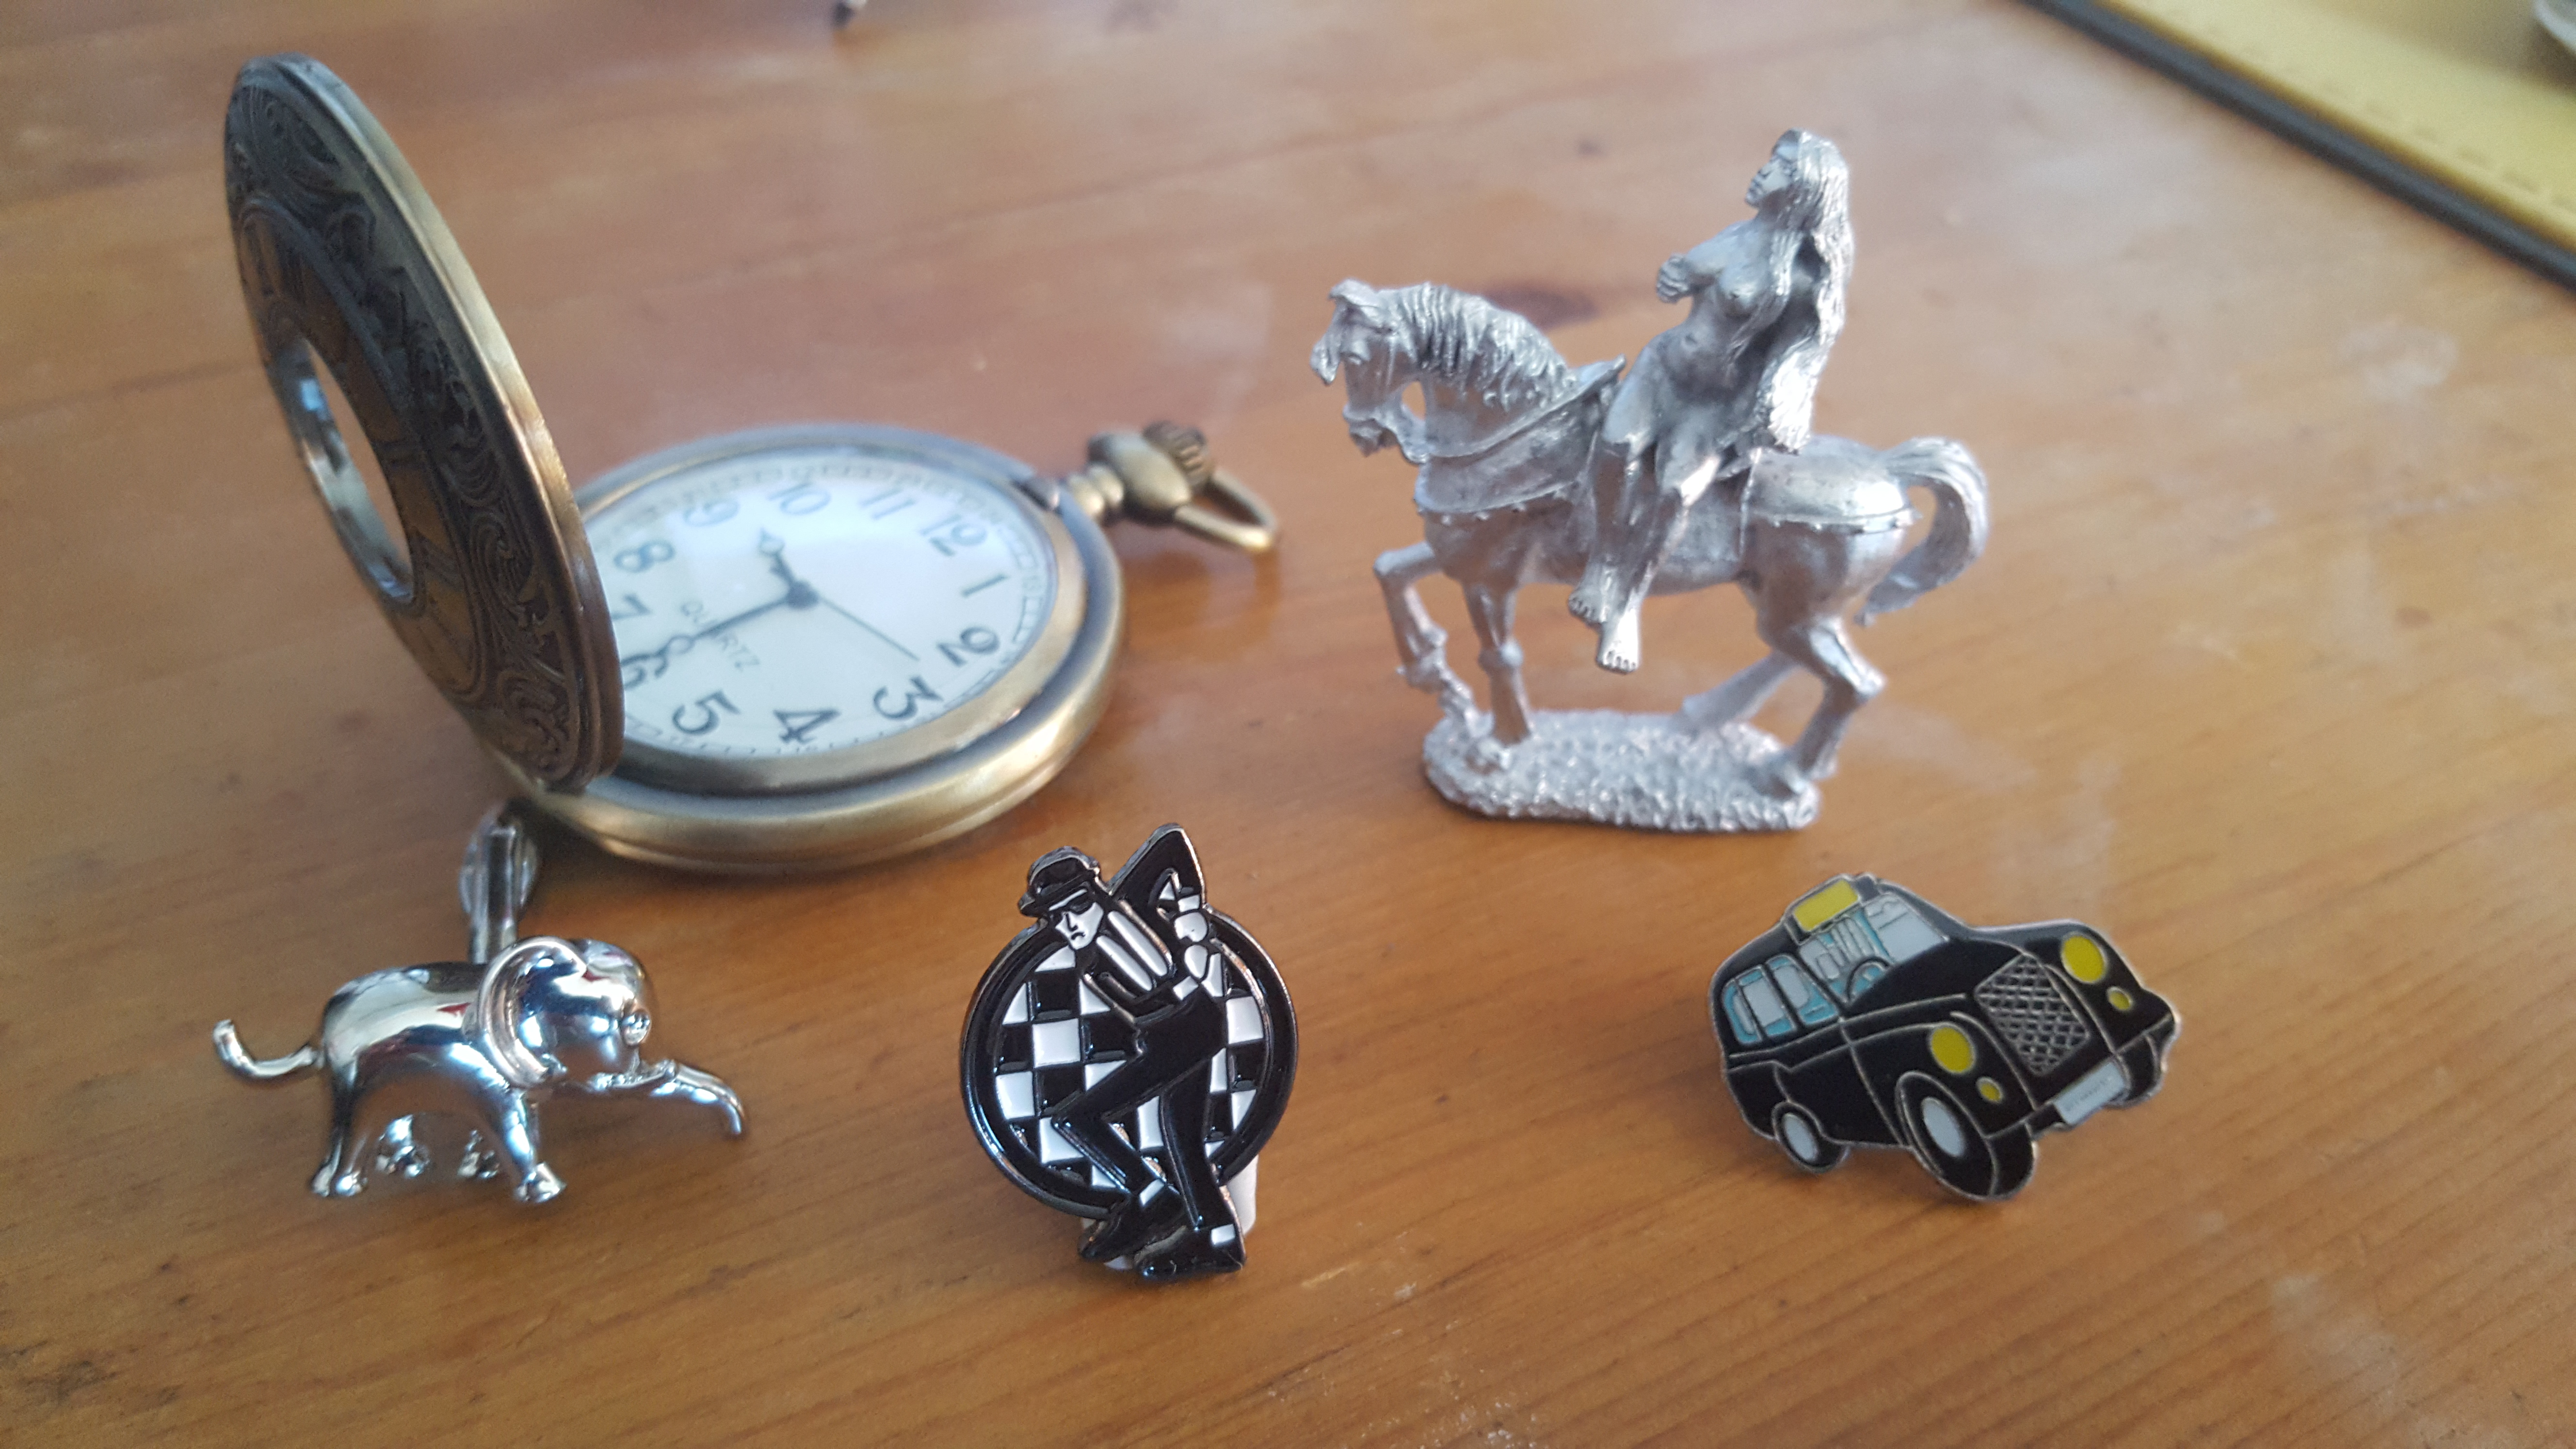 Just some of the playing pieces there should be in Coventry Monopoly